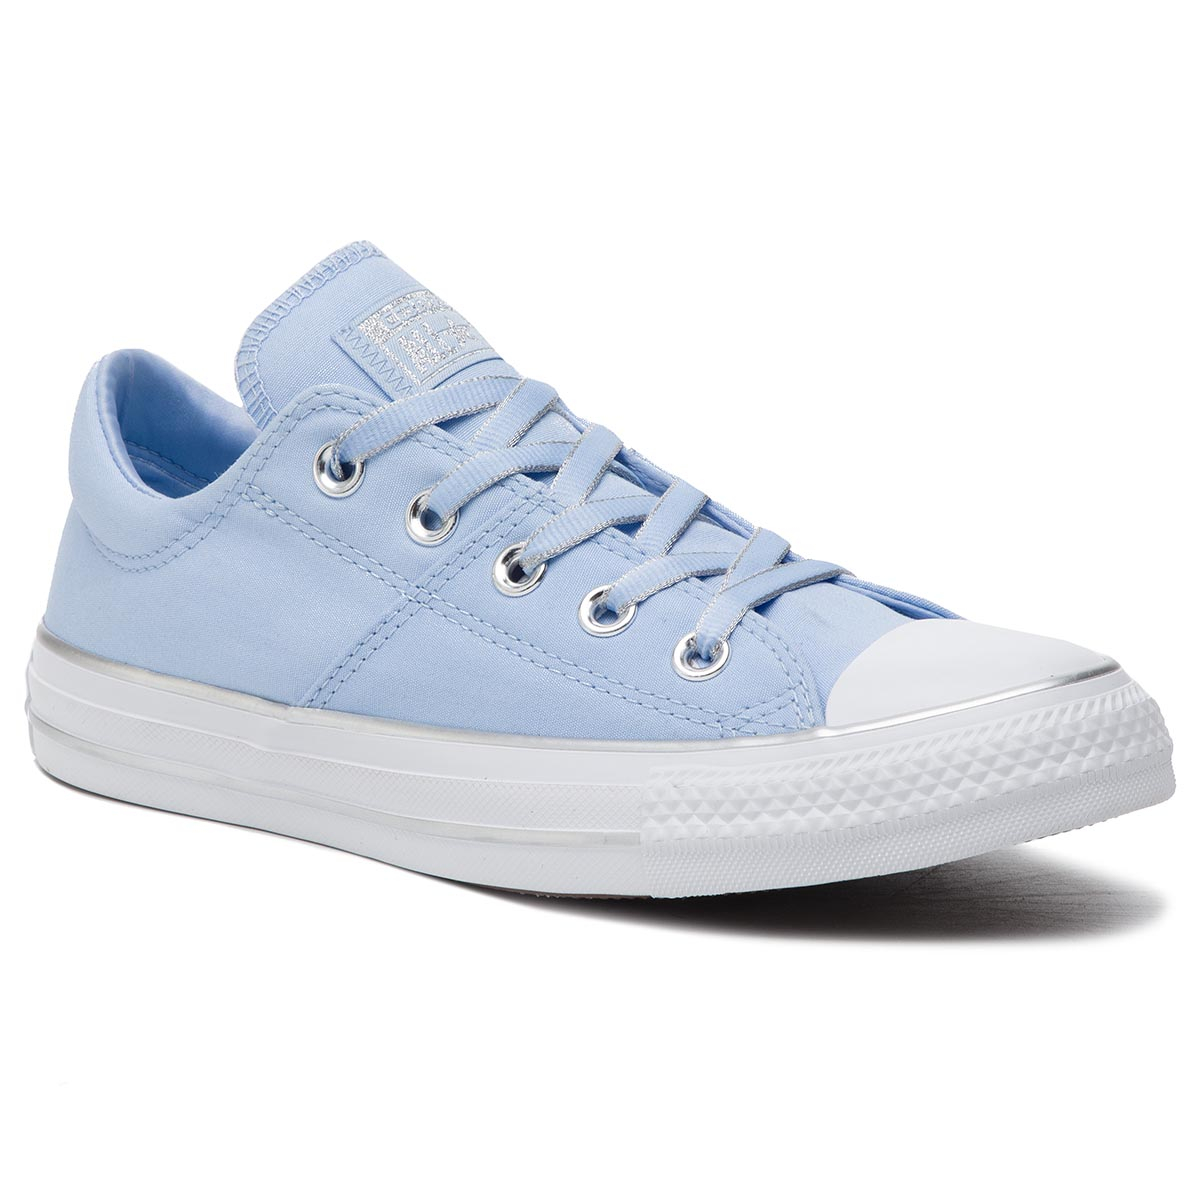 Trampki CONVERSE – Ctas Madison Ox 559907C  Blue Chill/Silver/White